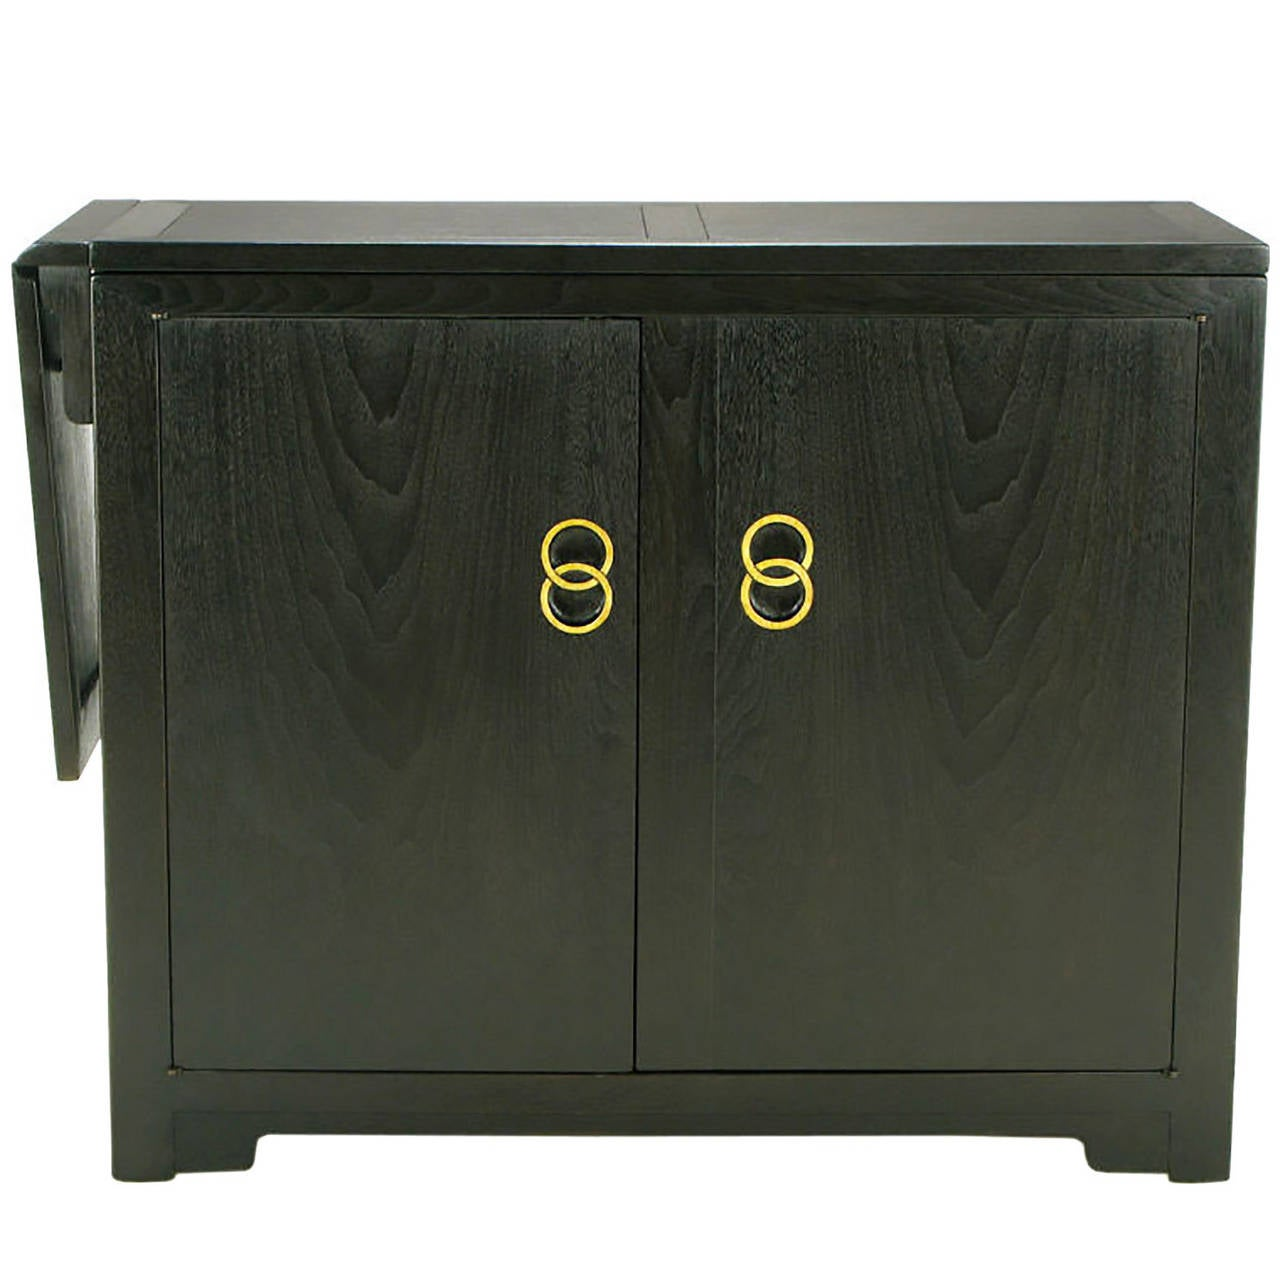 Michael Taylor for Baker Custom Bar with Built-In Refrigerator